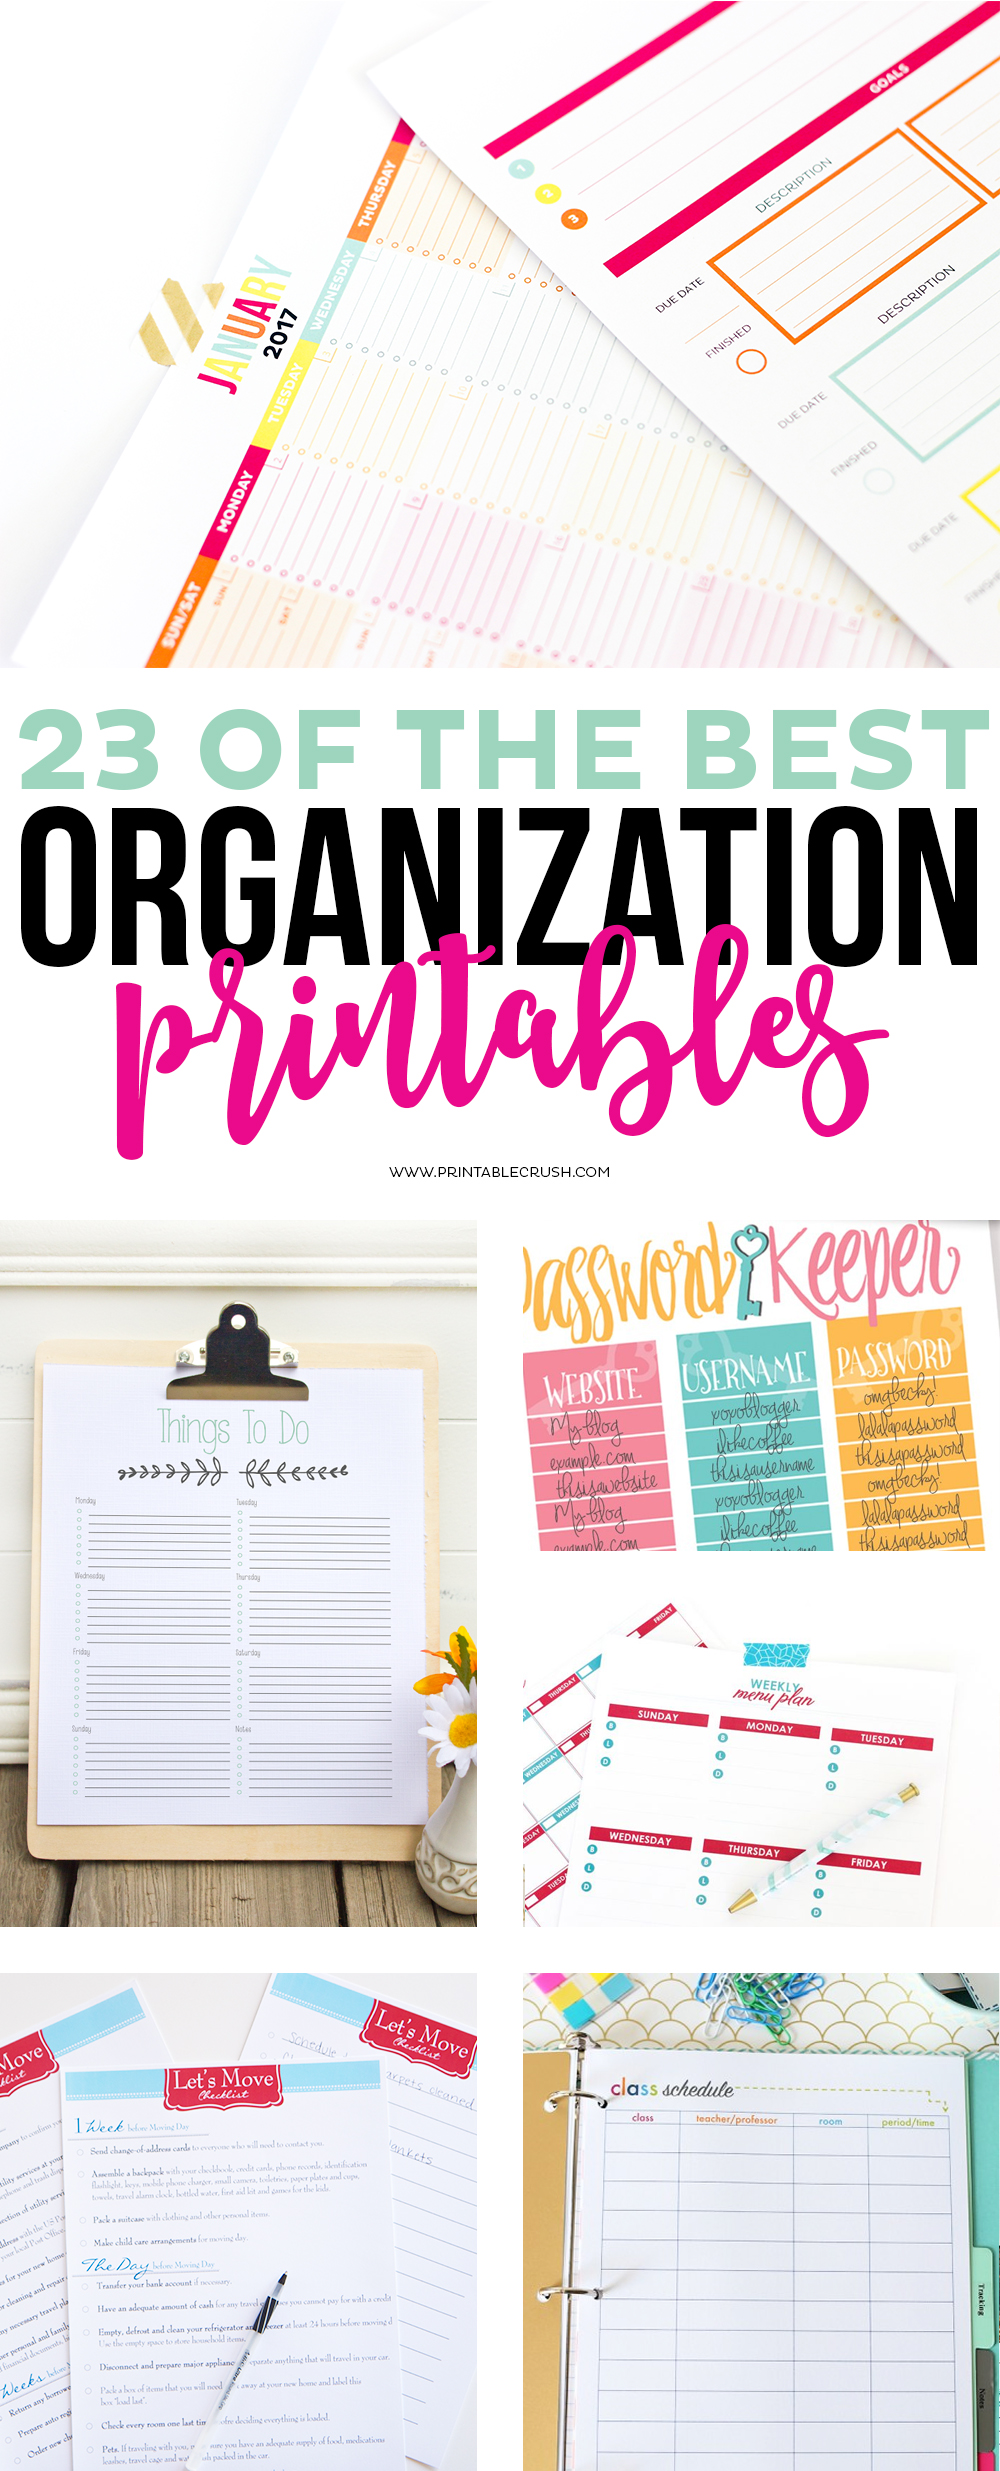 Calendar For Organization : Of the best organization printables printable crush